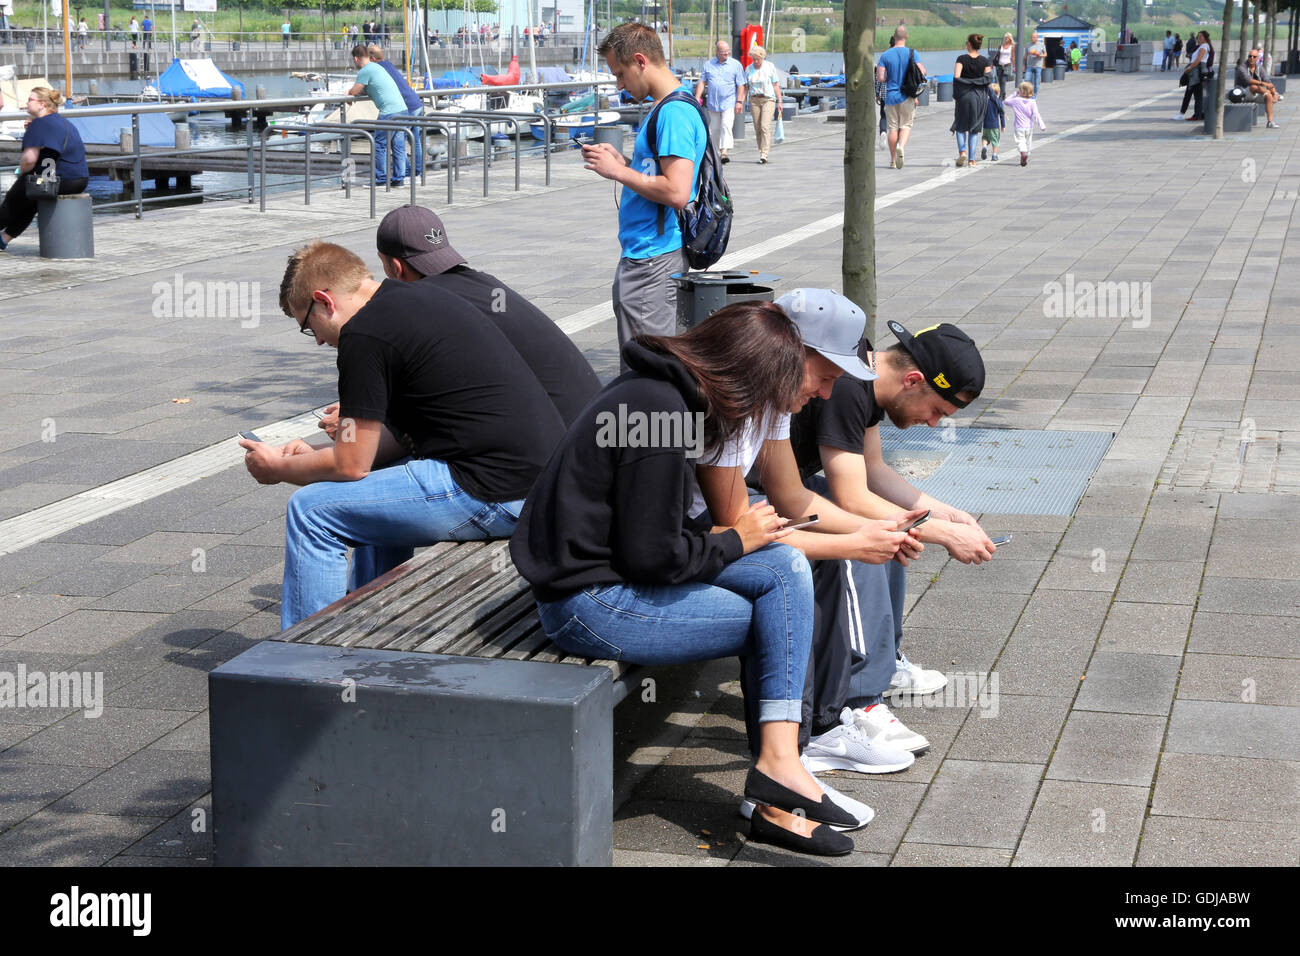 POKEMON GO, young people play the new Nintendo game Pokémon go on their smartphones on Lake Phoenix in Dortmund, Germany. The players try to catch in the real world virtual Pokemon monsters on to their smartphone devices. Stock Photo